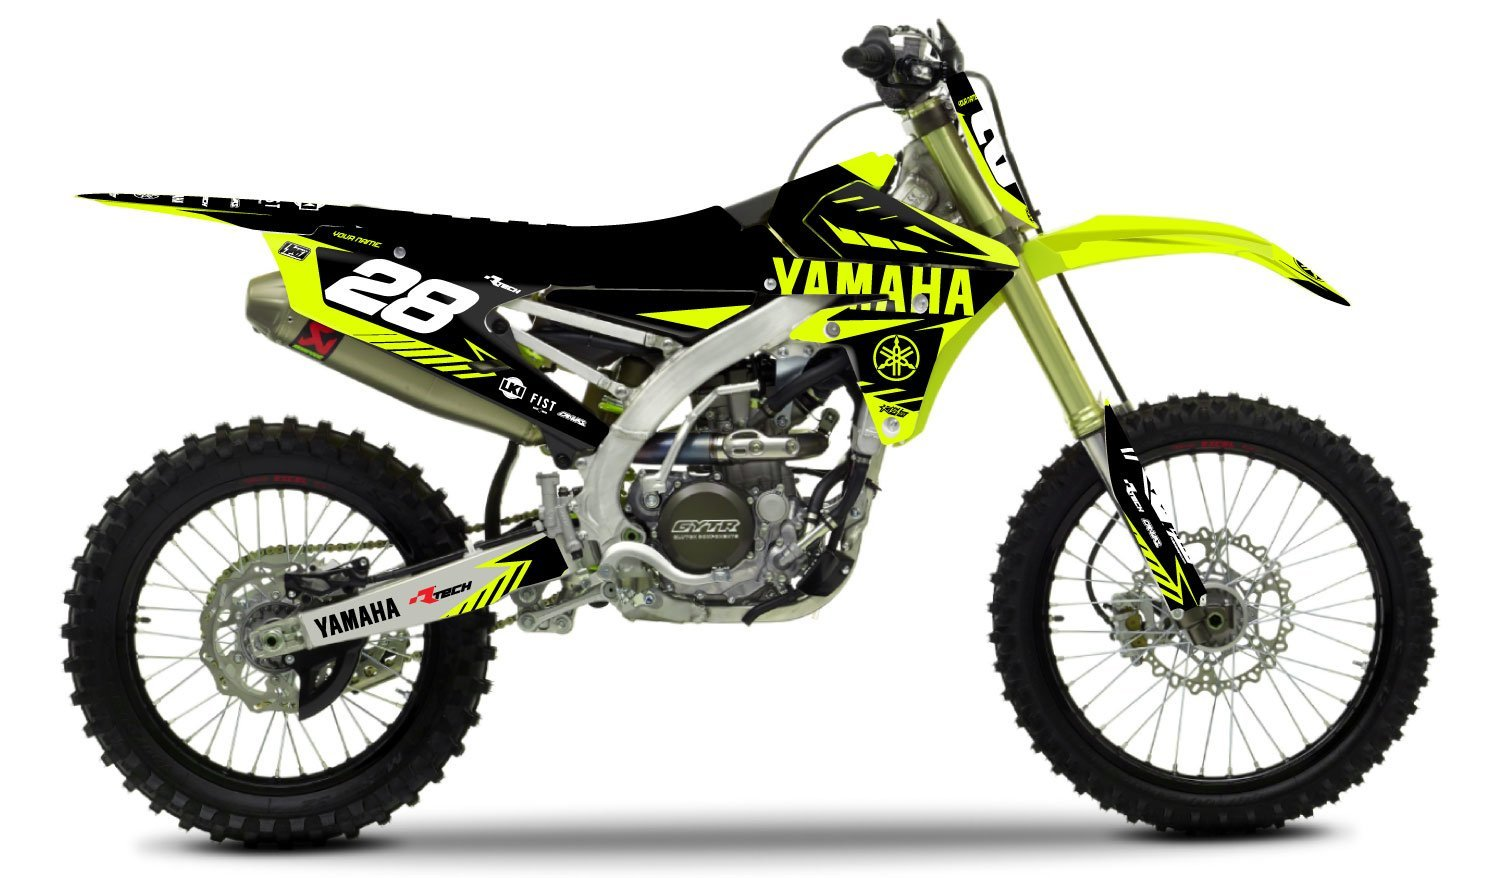 YAMAHA NEON KIT Rival Ink Design Co